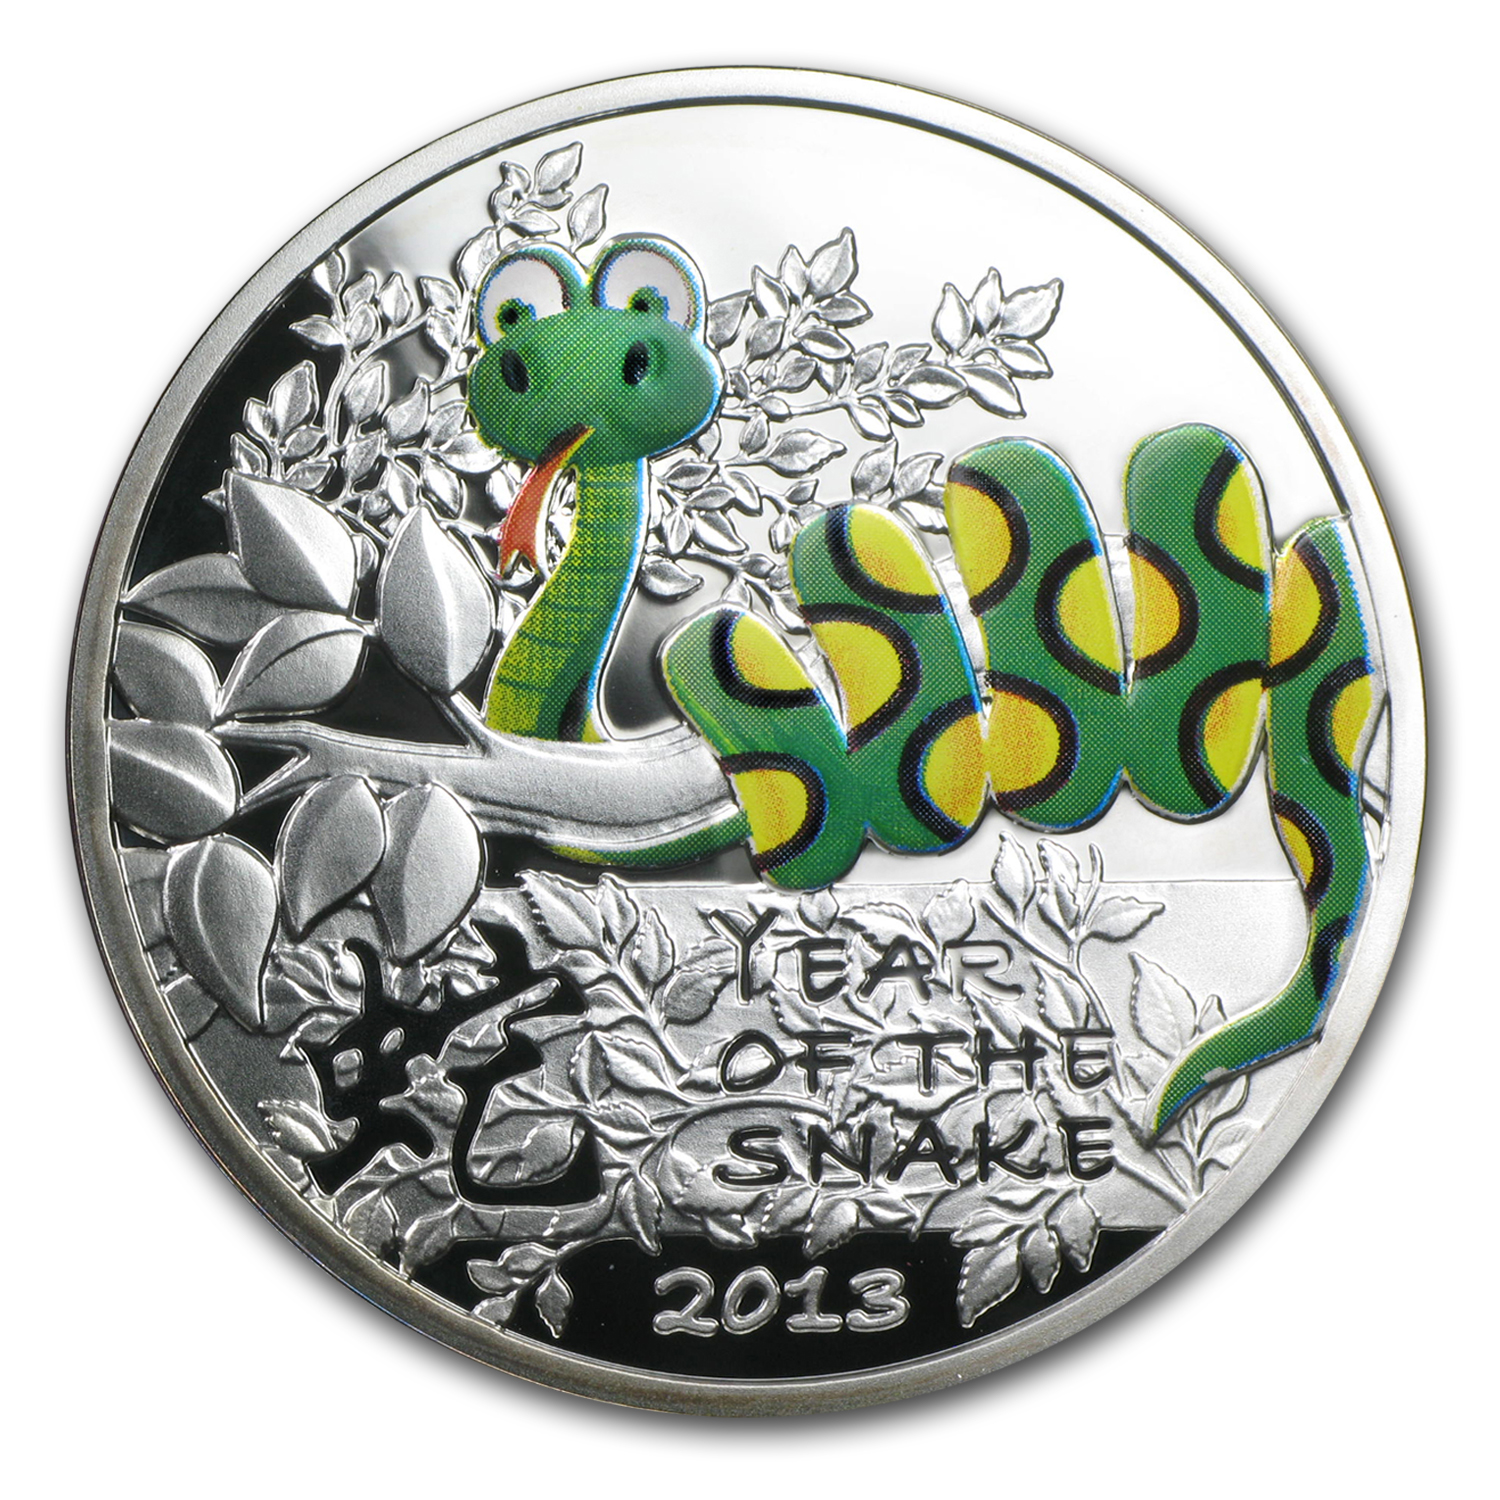 Niue 2013 Proof $1 Year of the Snake - Fairy Tale Snake